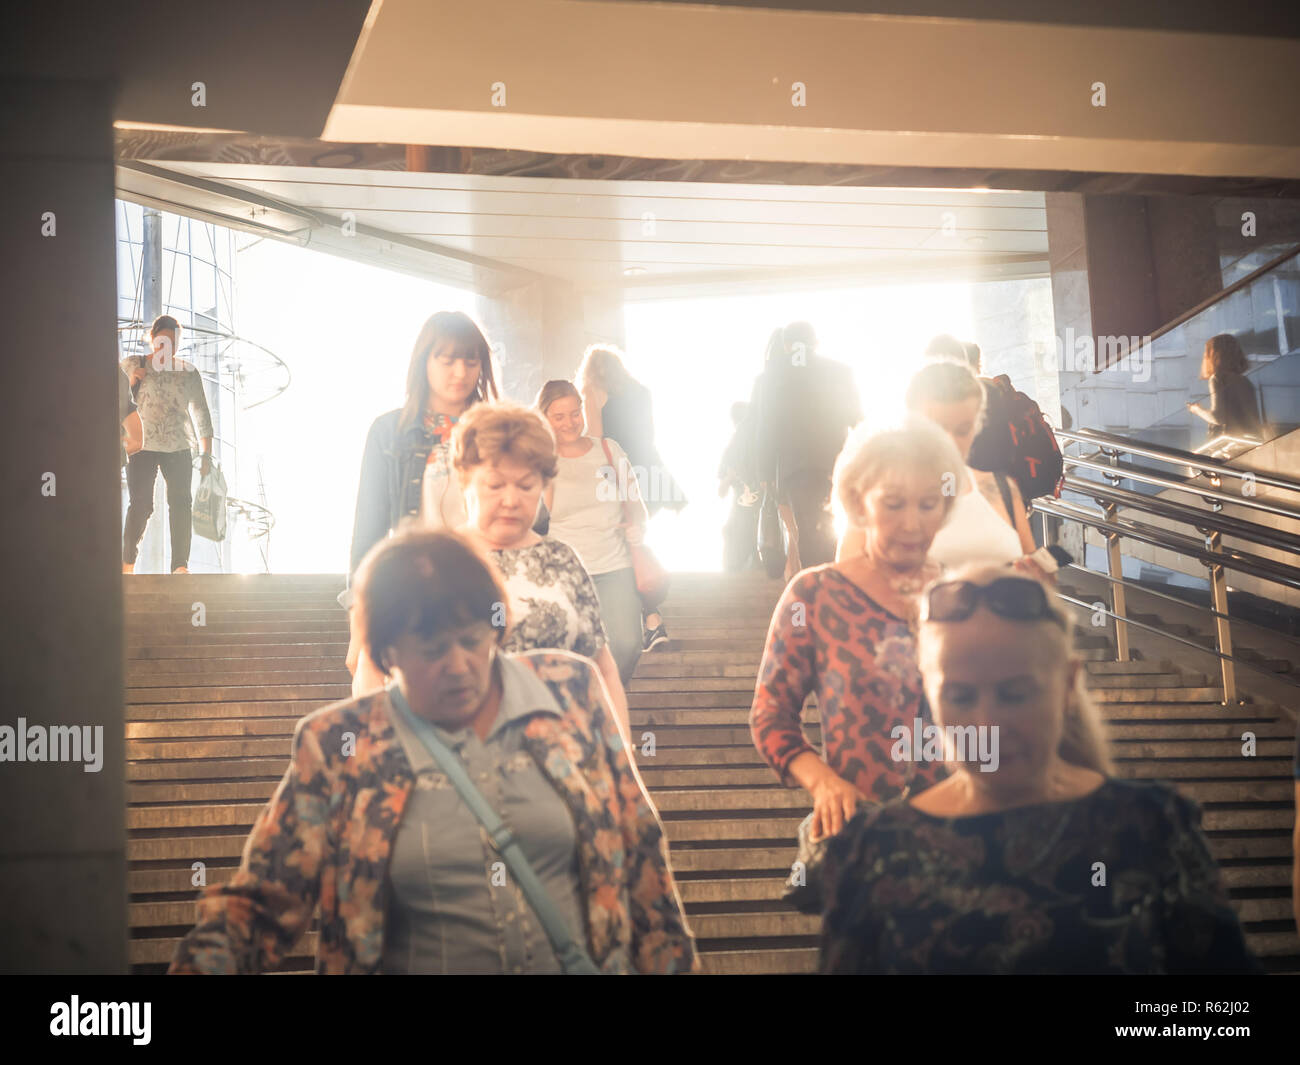 Moscow, Russia - September 6, 2018: Ordinary people go up and go down to the underground subway at rush hour. People go down to the underpass. Silhouettes of people walking down the steps against the backdrop of the sun. - Stock Image